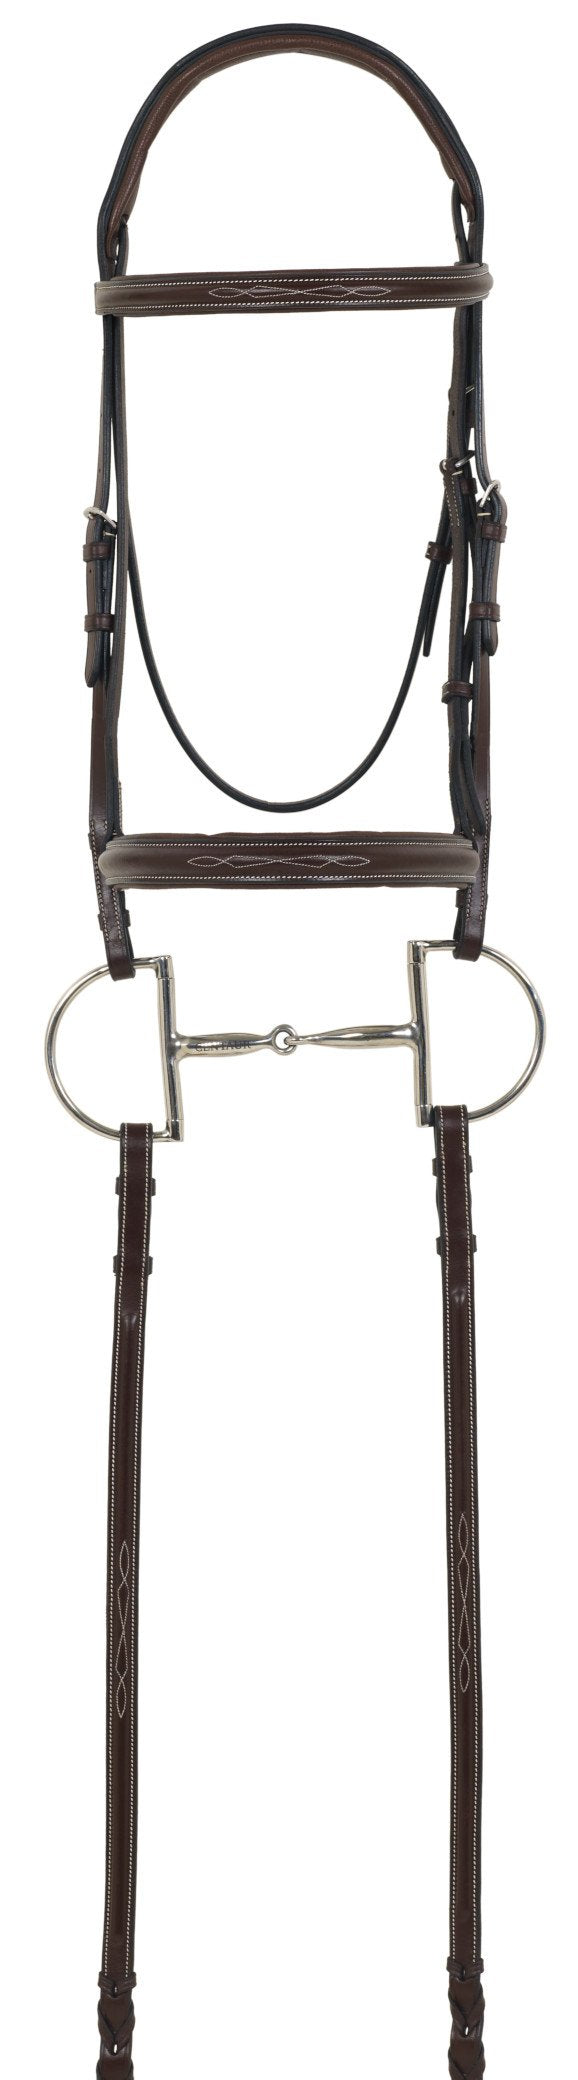 Camelot Gold RCS Fancy Raised Padded Bridle with Reins